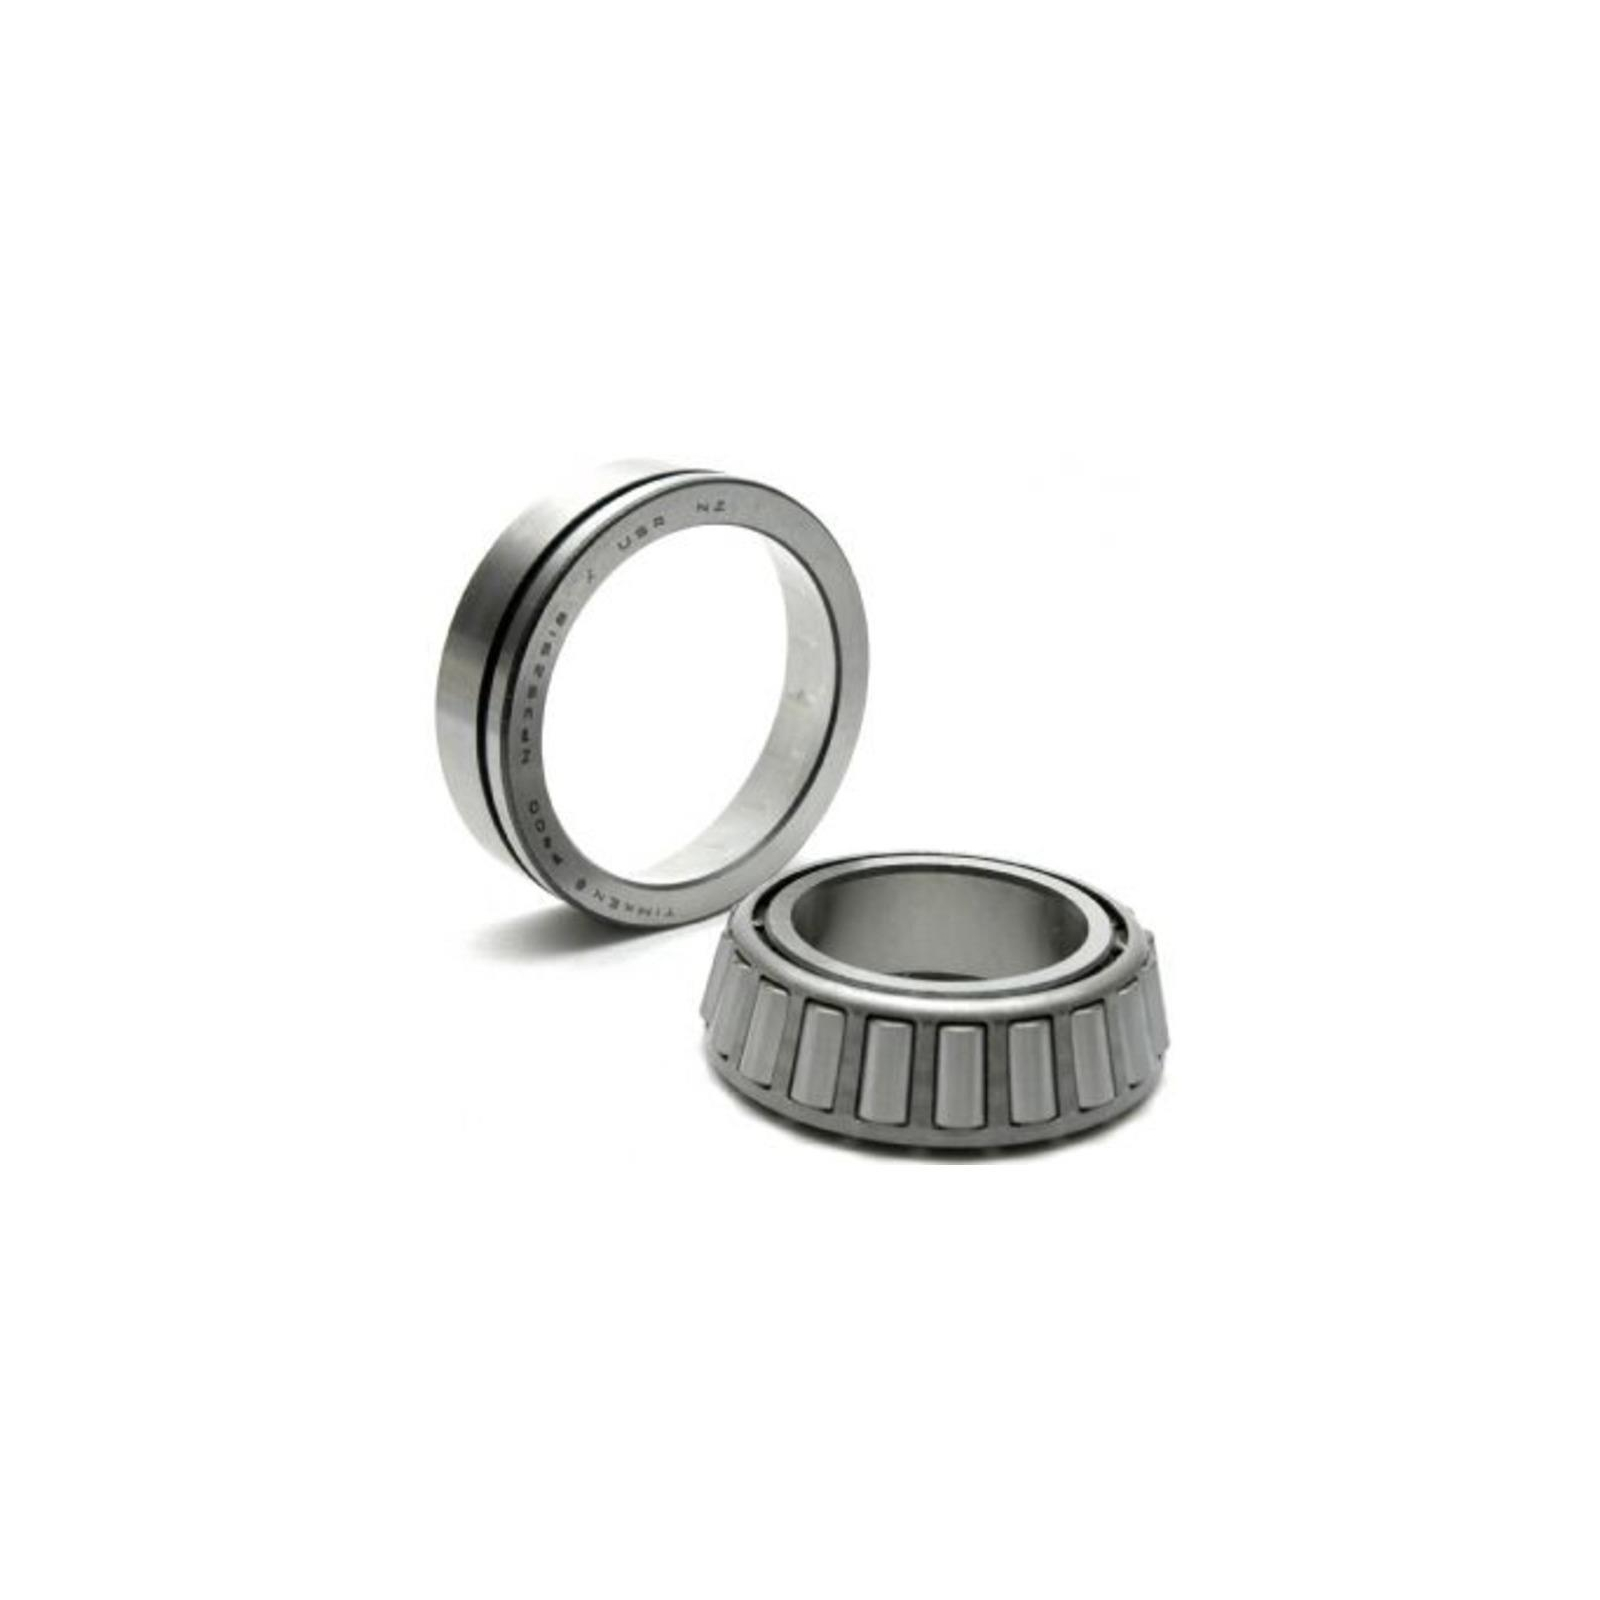 A604 transfer shaft bearing cup & cone kit